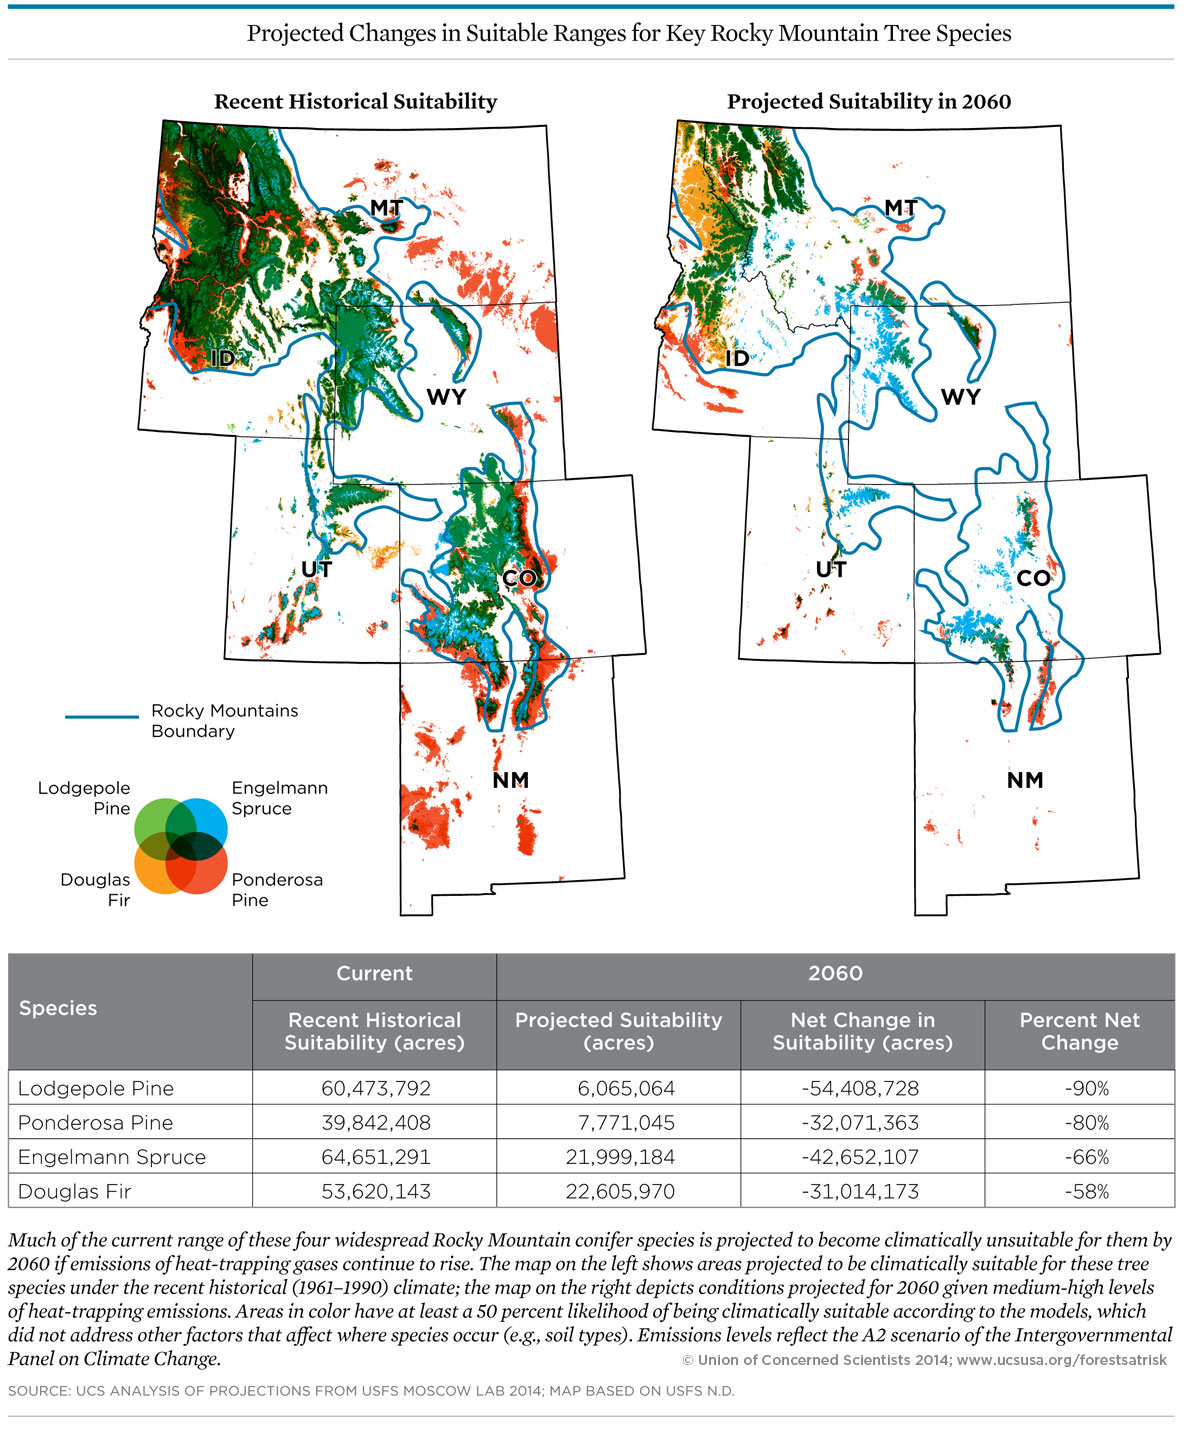 Rocky Mountain Forests at Risk 2014 Union of Concerned Scientists